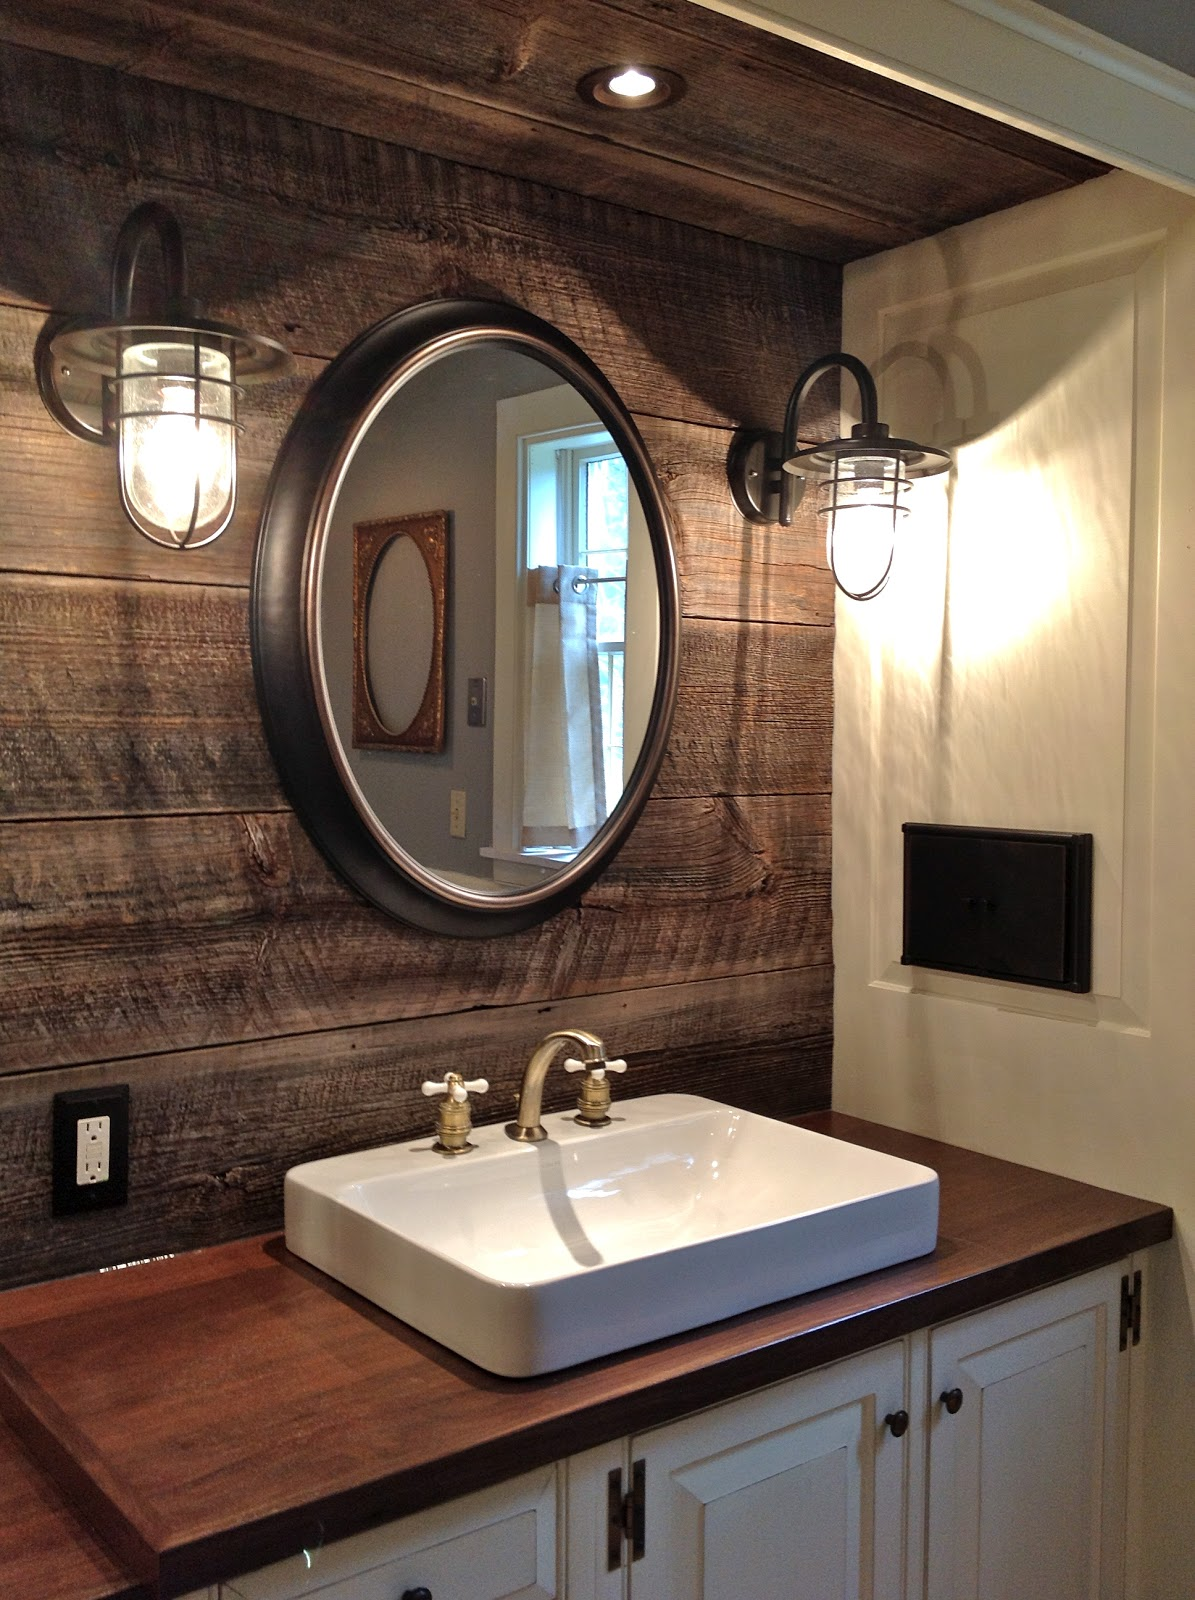 Overstock Farmhouse Sink Route 2 Rural Farmhouse Bathroom Remodel Done